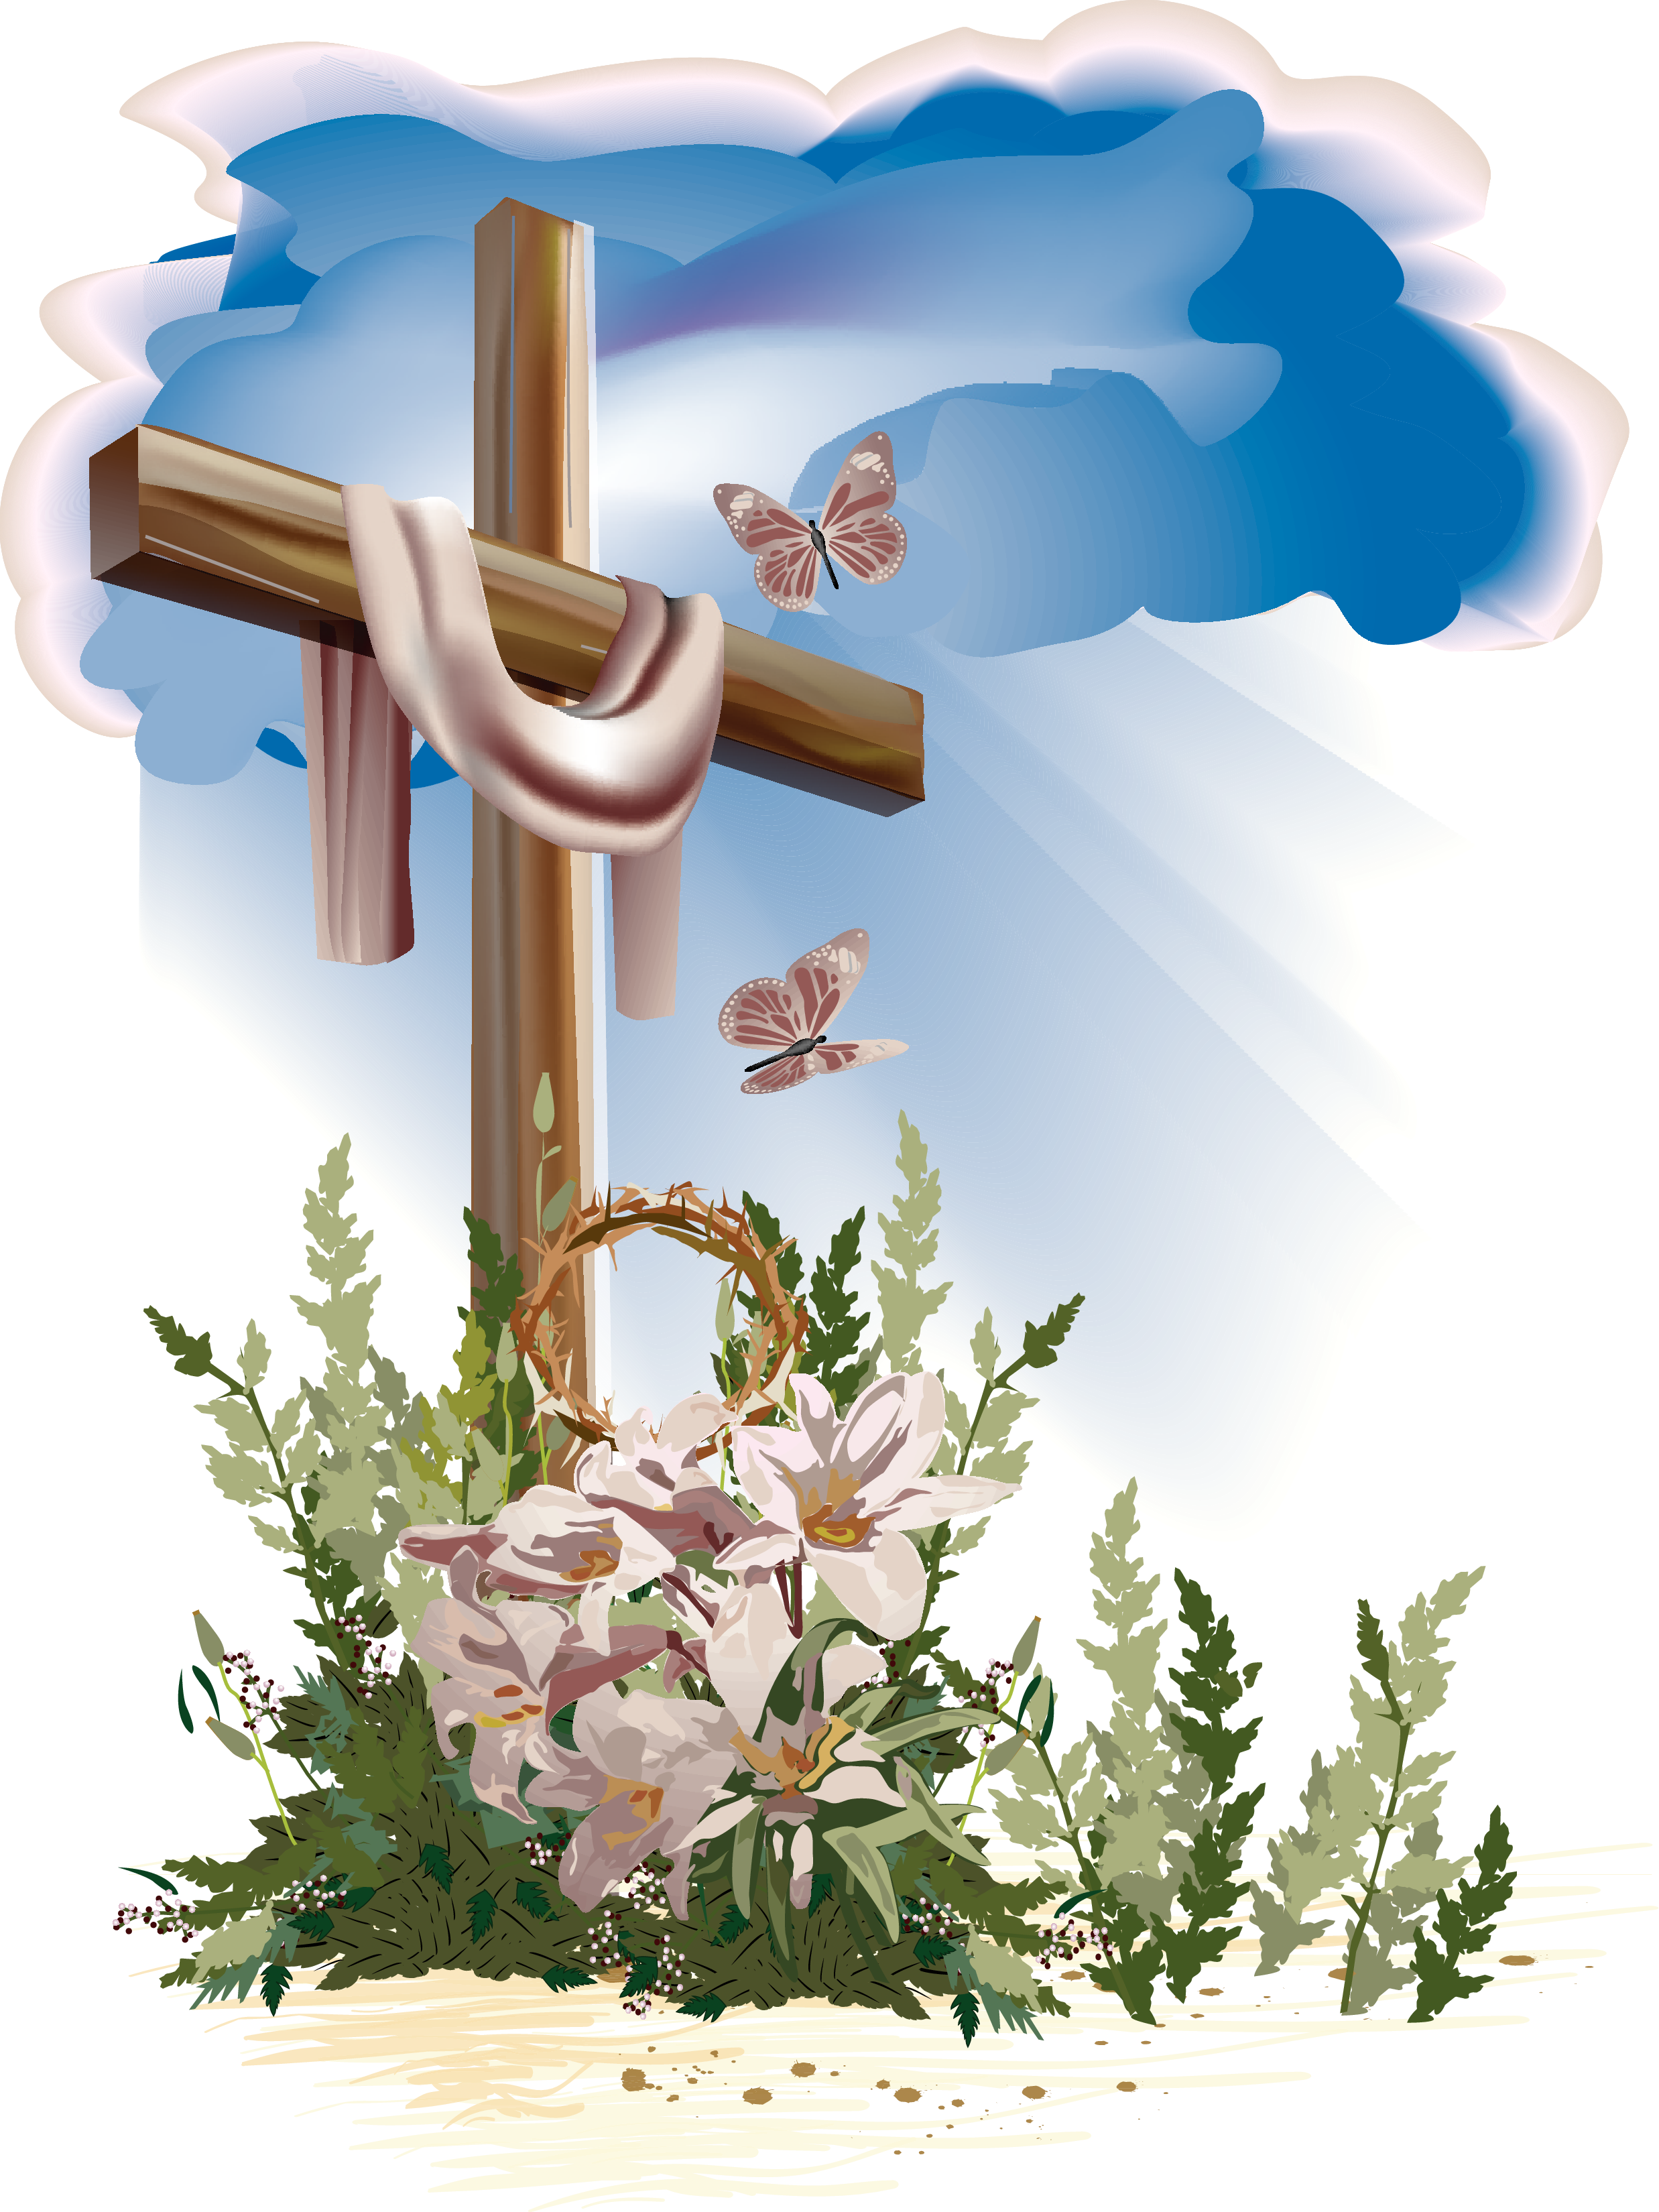 Easter cross clipart png. Http bishopumc org hp